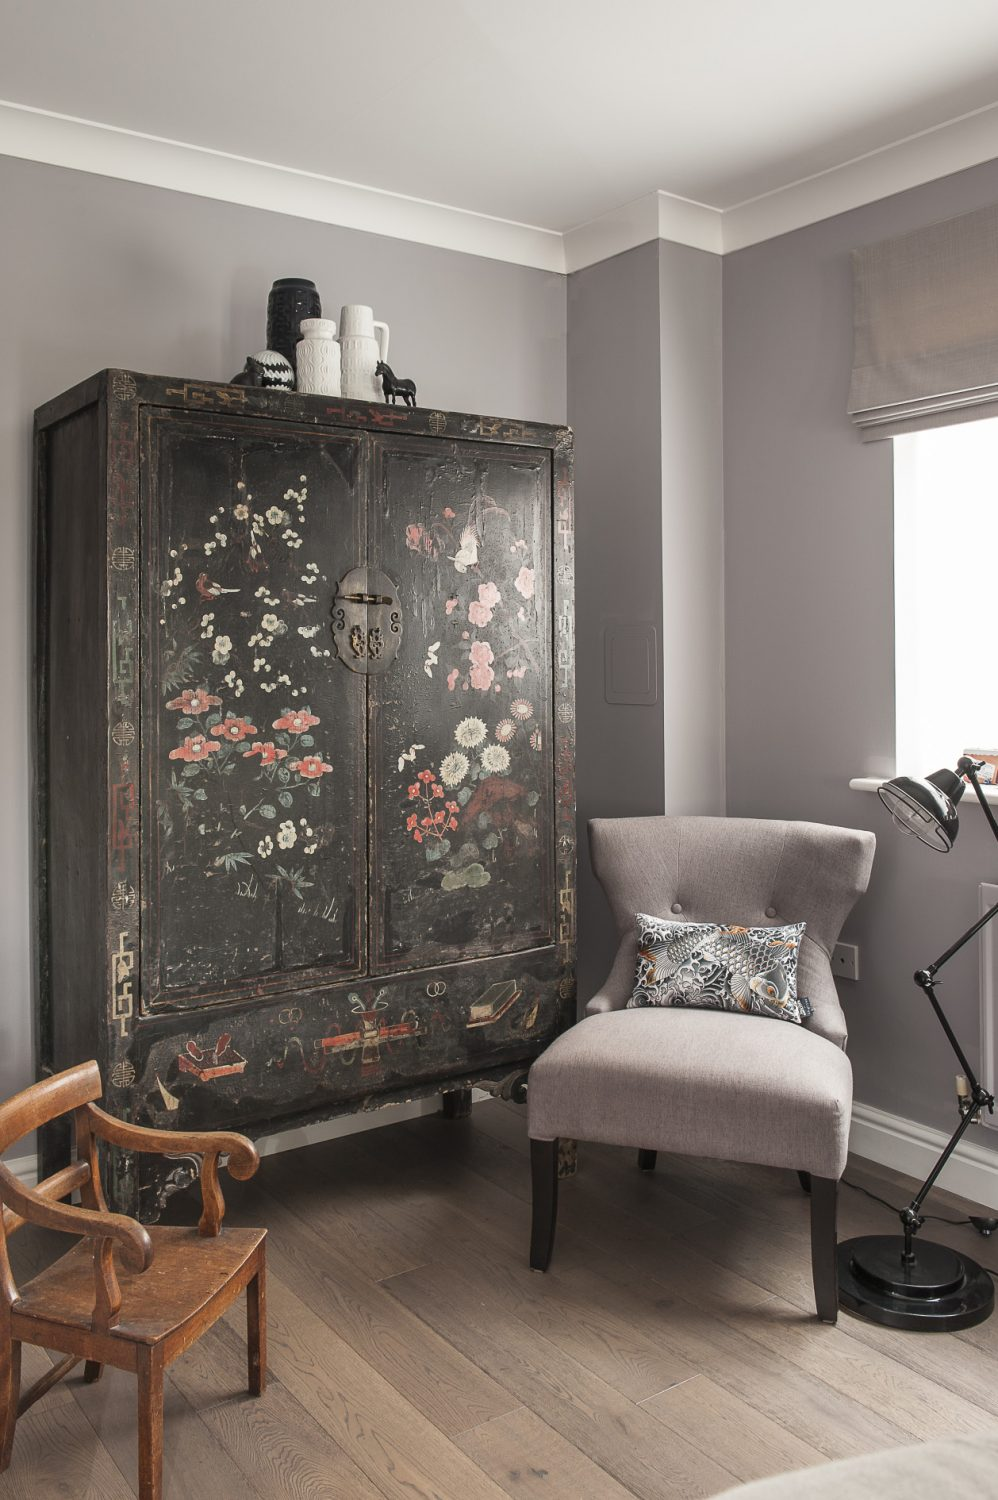 Phoebe has created a clever juxtaposition of textures, designs and patterns from inlaid chairs and an oriental cupboard to a sequinned Jean Paul Gaultier cushion